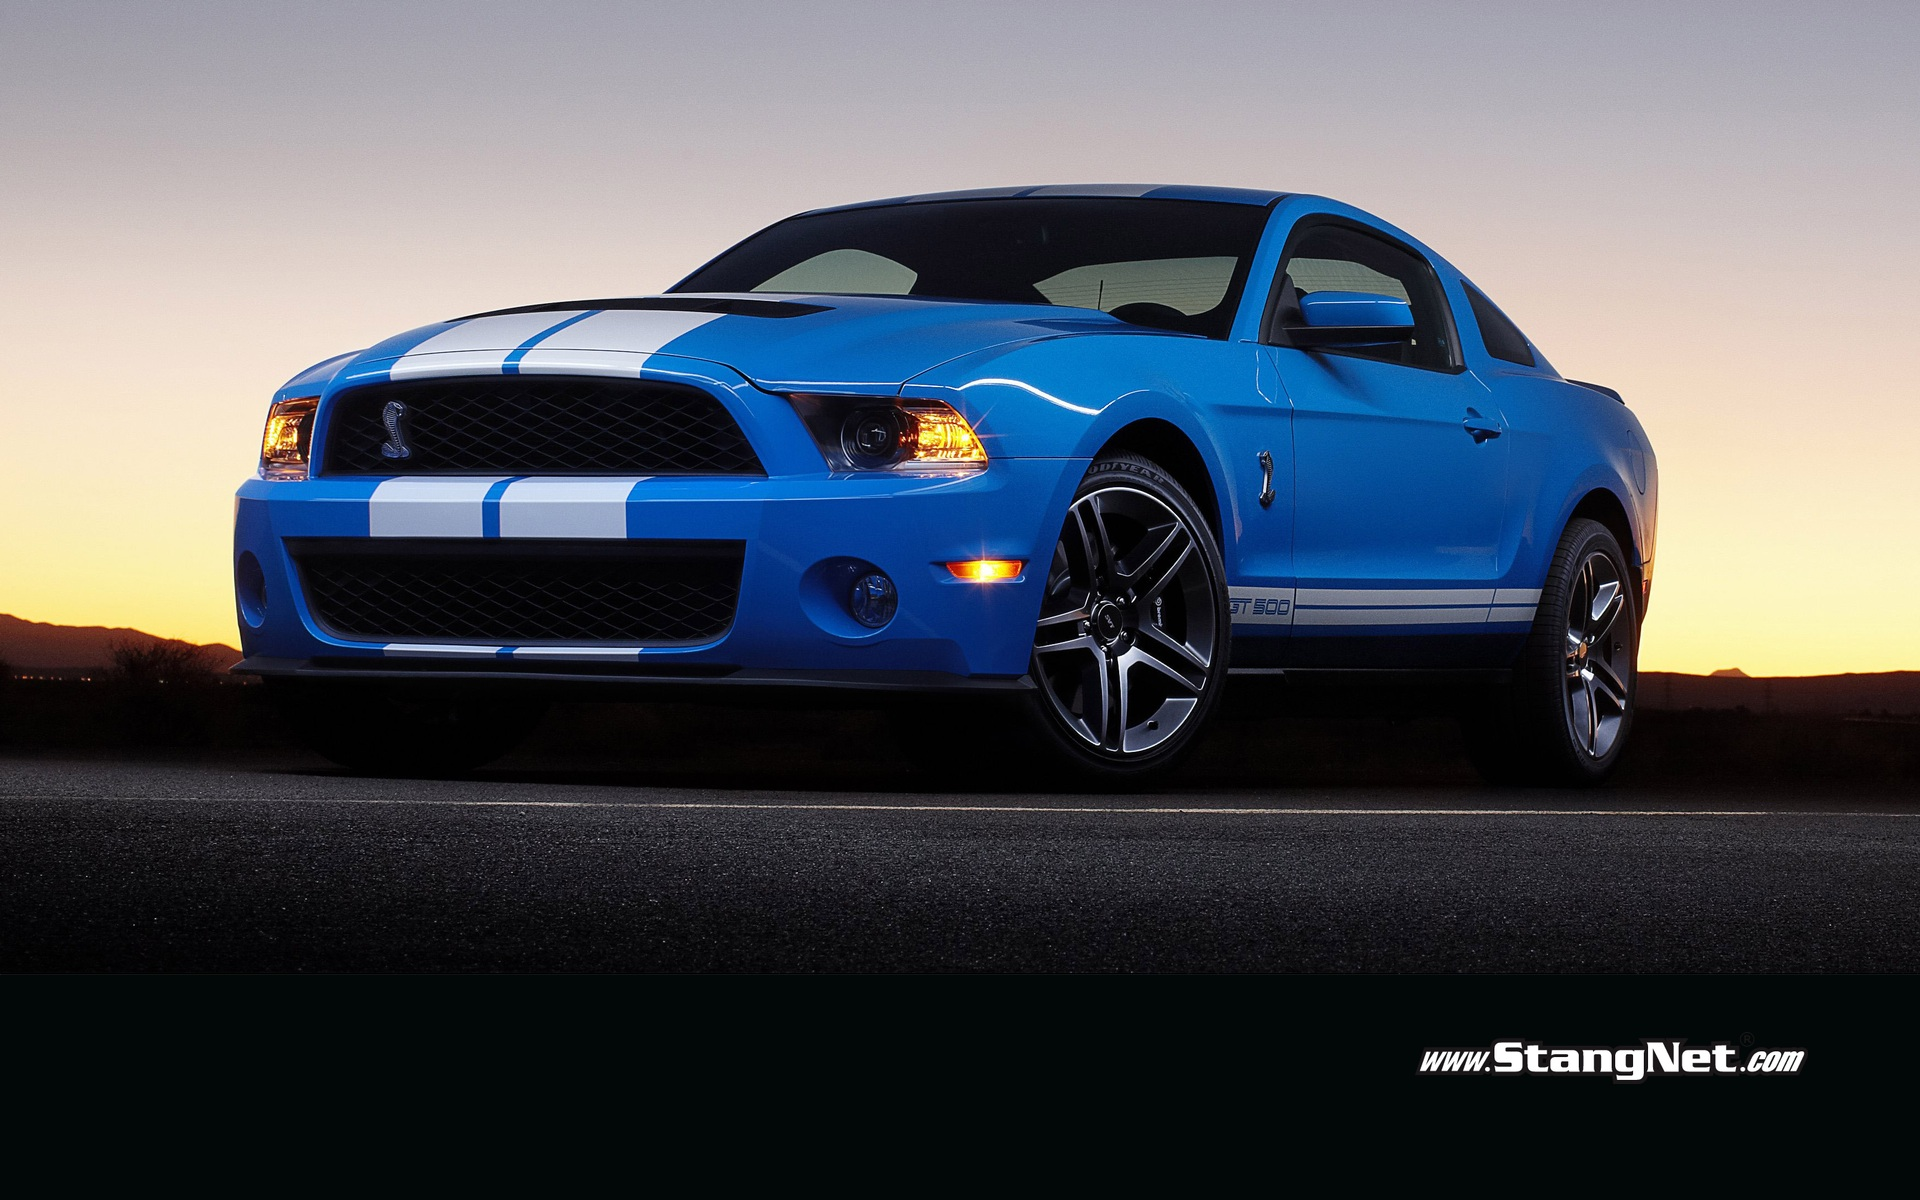 Mustang Shelby Gt 1965 2011 American Muscle Car Gt500 Wiring Diagram 2010 Ford